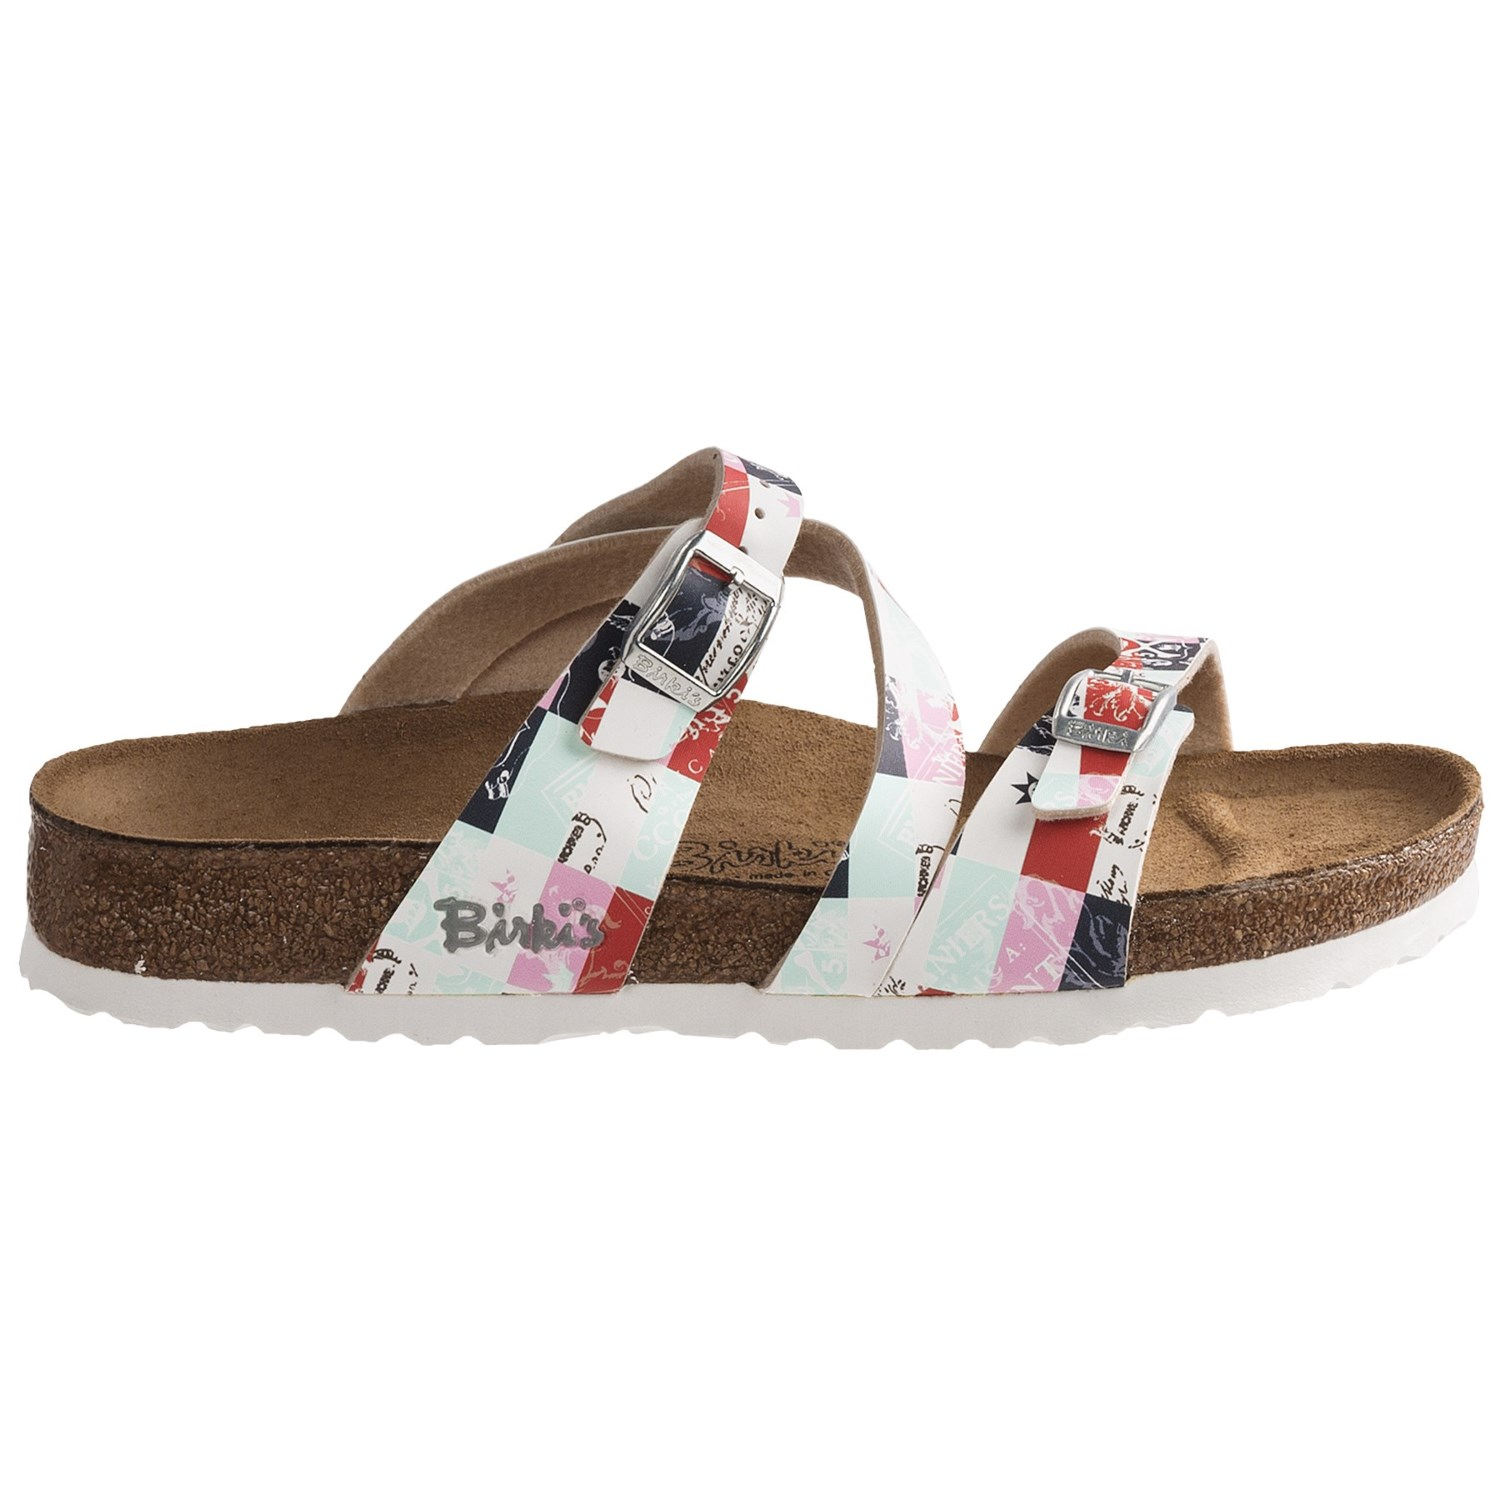 Popular Birkenstock Now Offers Sandals With Thin Straps With A Lessstructured, Chunky Style And Going Far Beyond The Look That Has Transformed Into The Hippiechic Look Of The Summer Check The Top 20 Birkenstock  United Nude Womens Lo